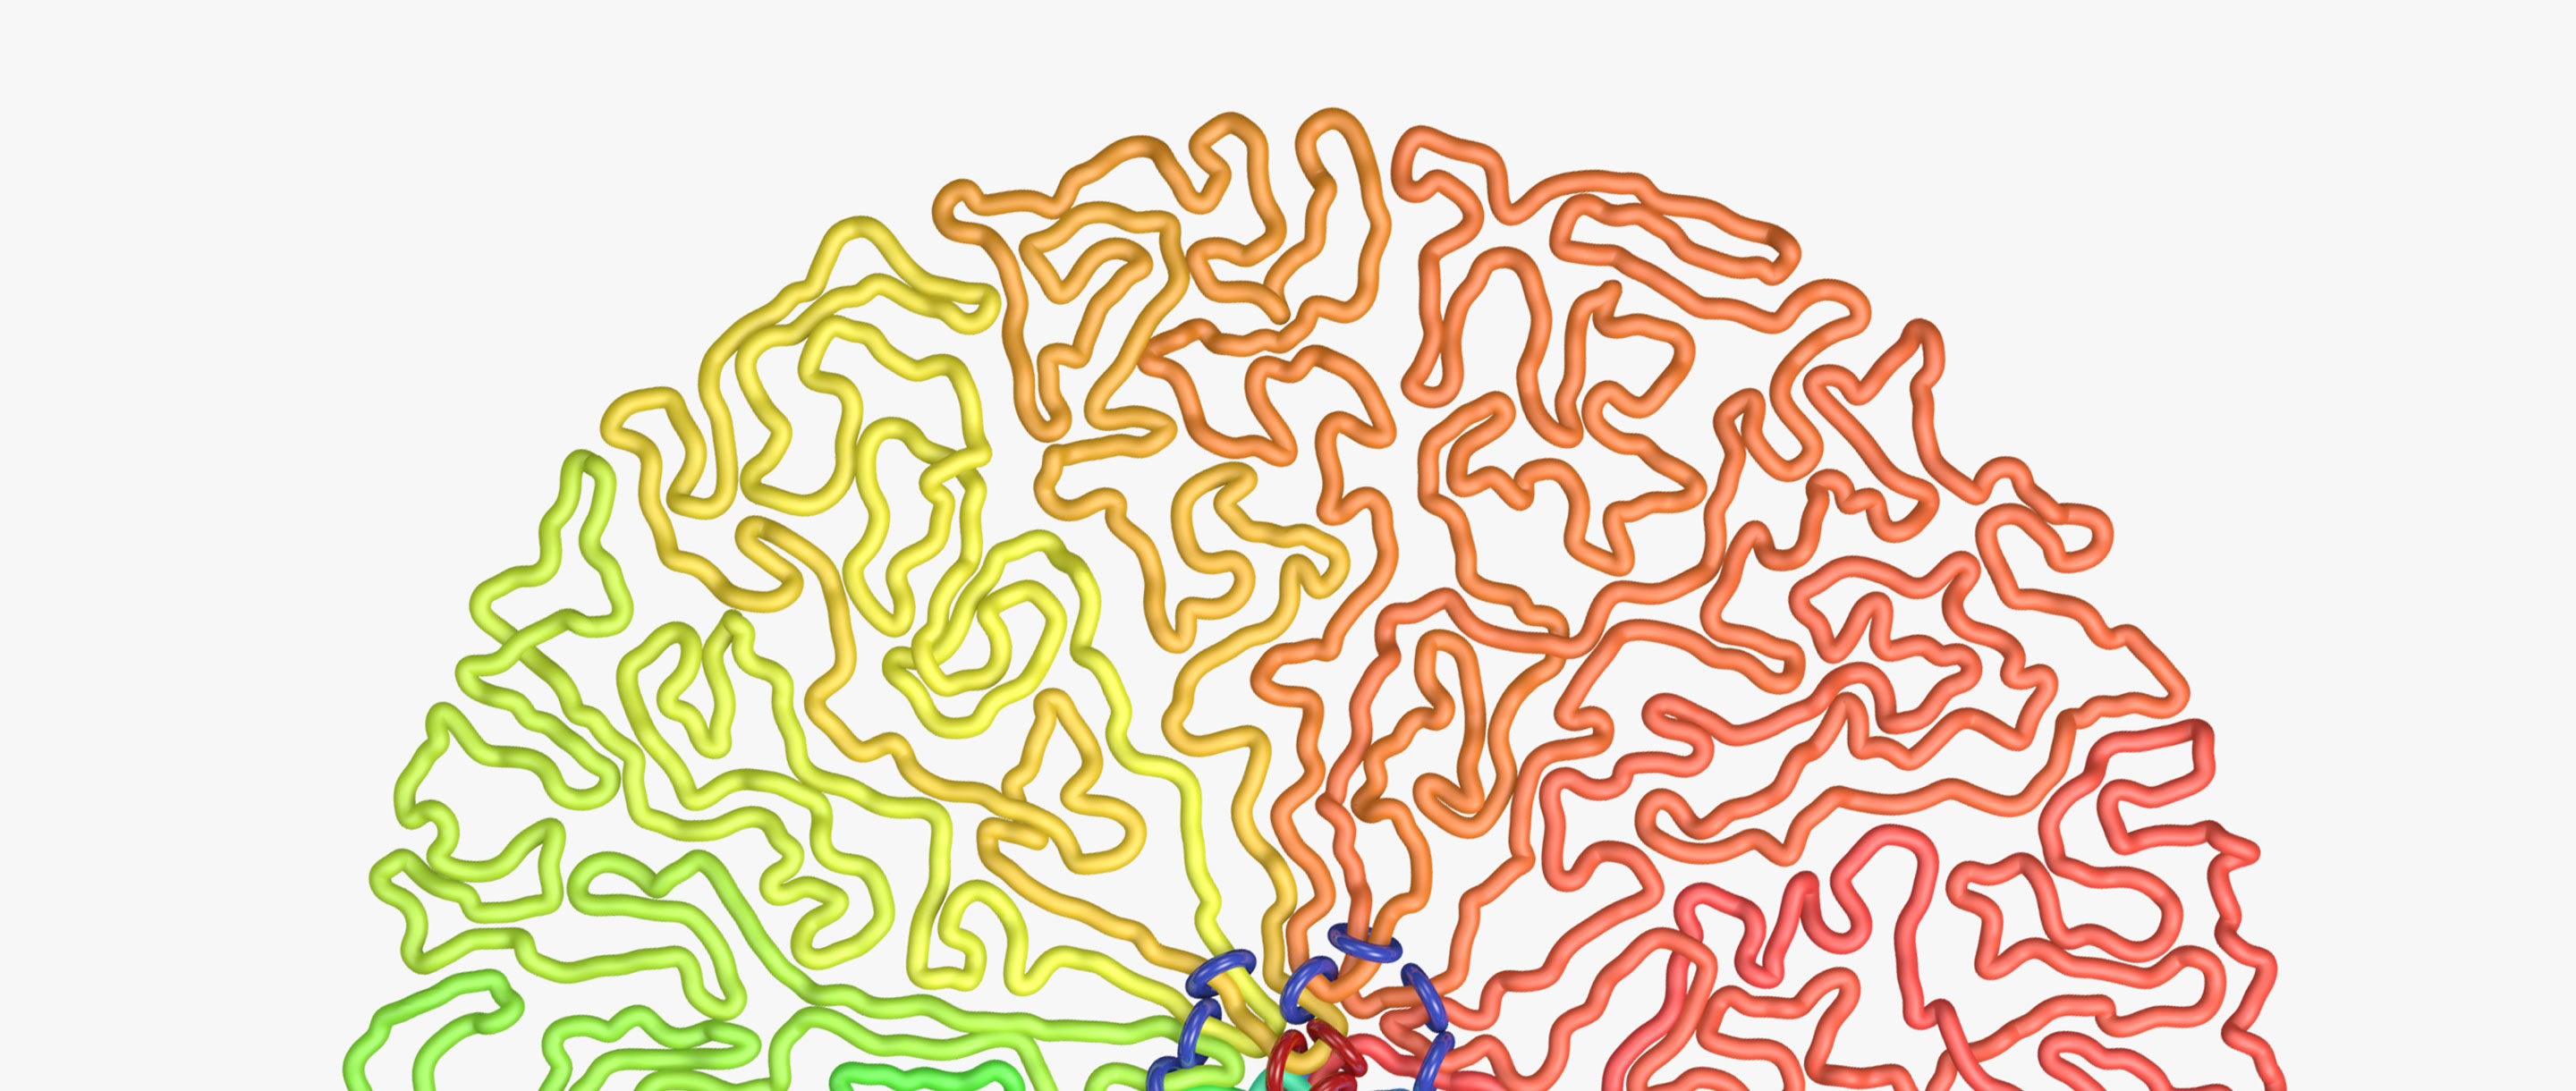 Homepage illustration of genome packaging